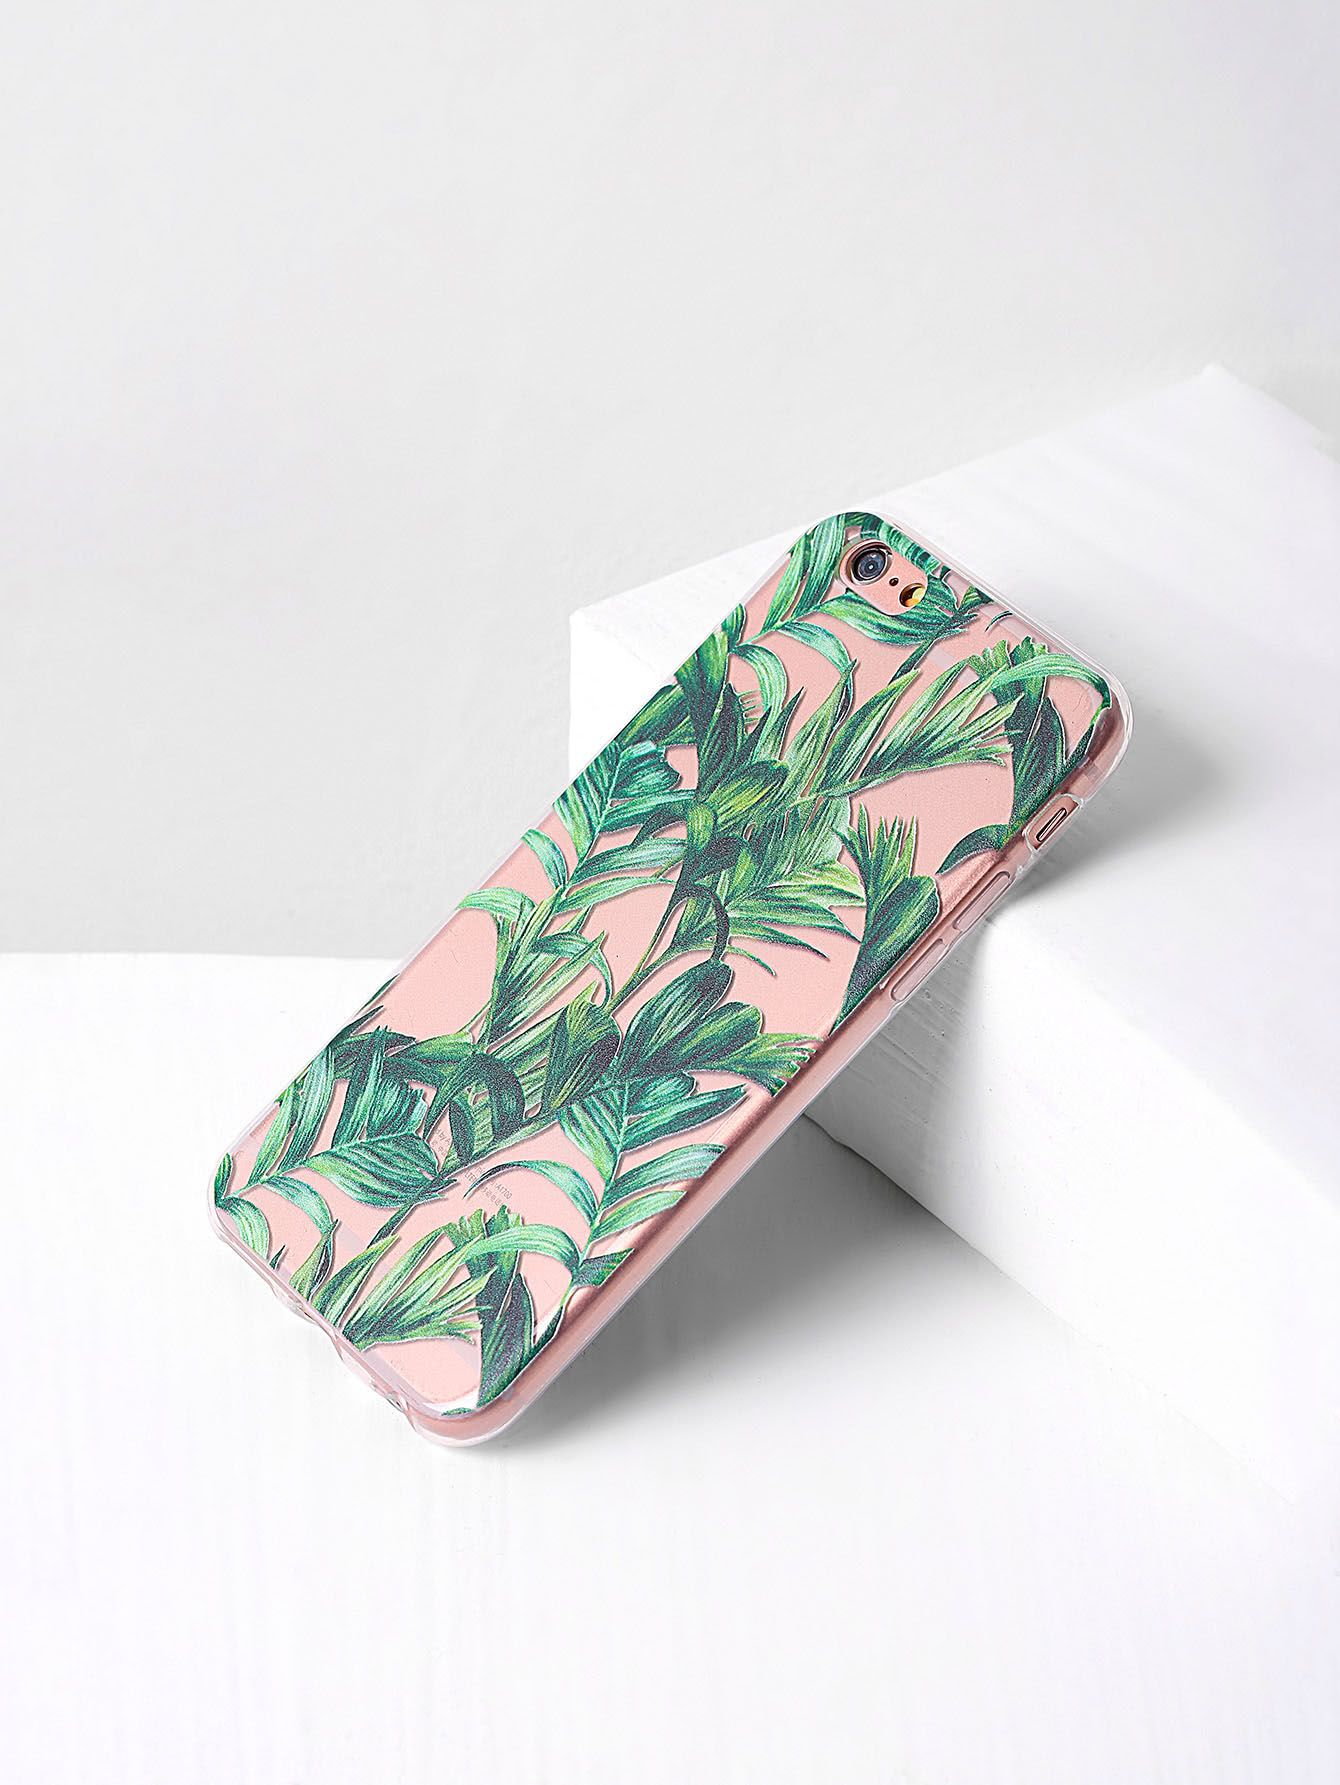 93c3a60cb6 Shop Green Leaf Print Clear iPhone Case online. SheIn offers Green Leaf  Print Clear iPhone Case & more to fit your fashionable needs.